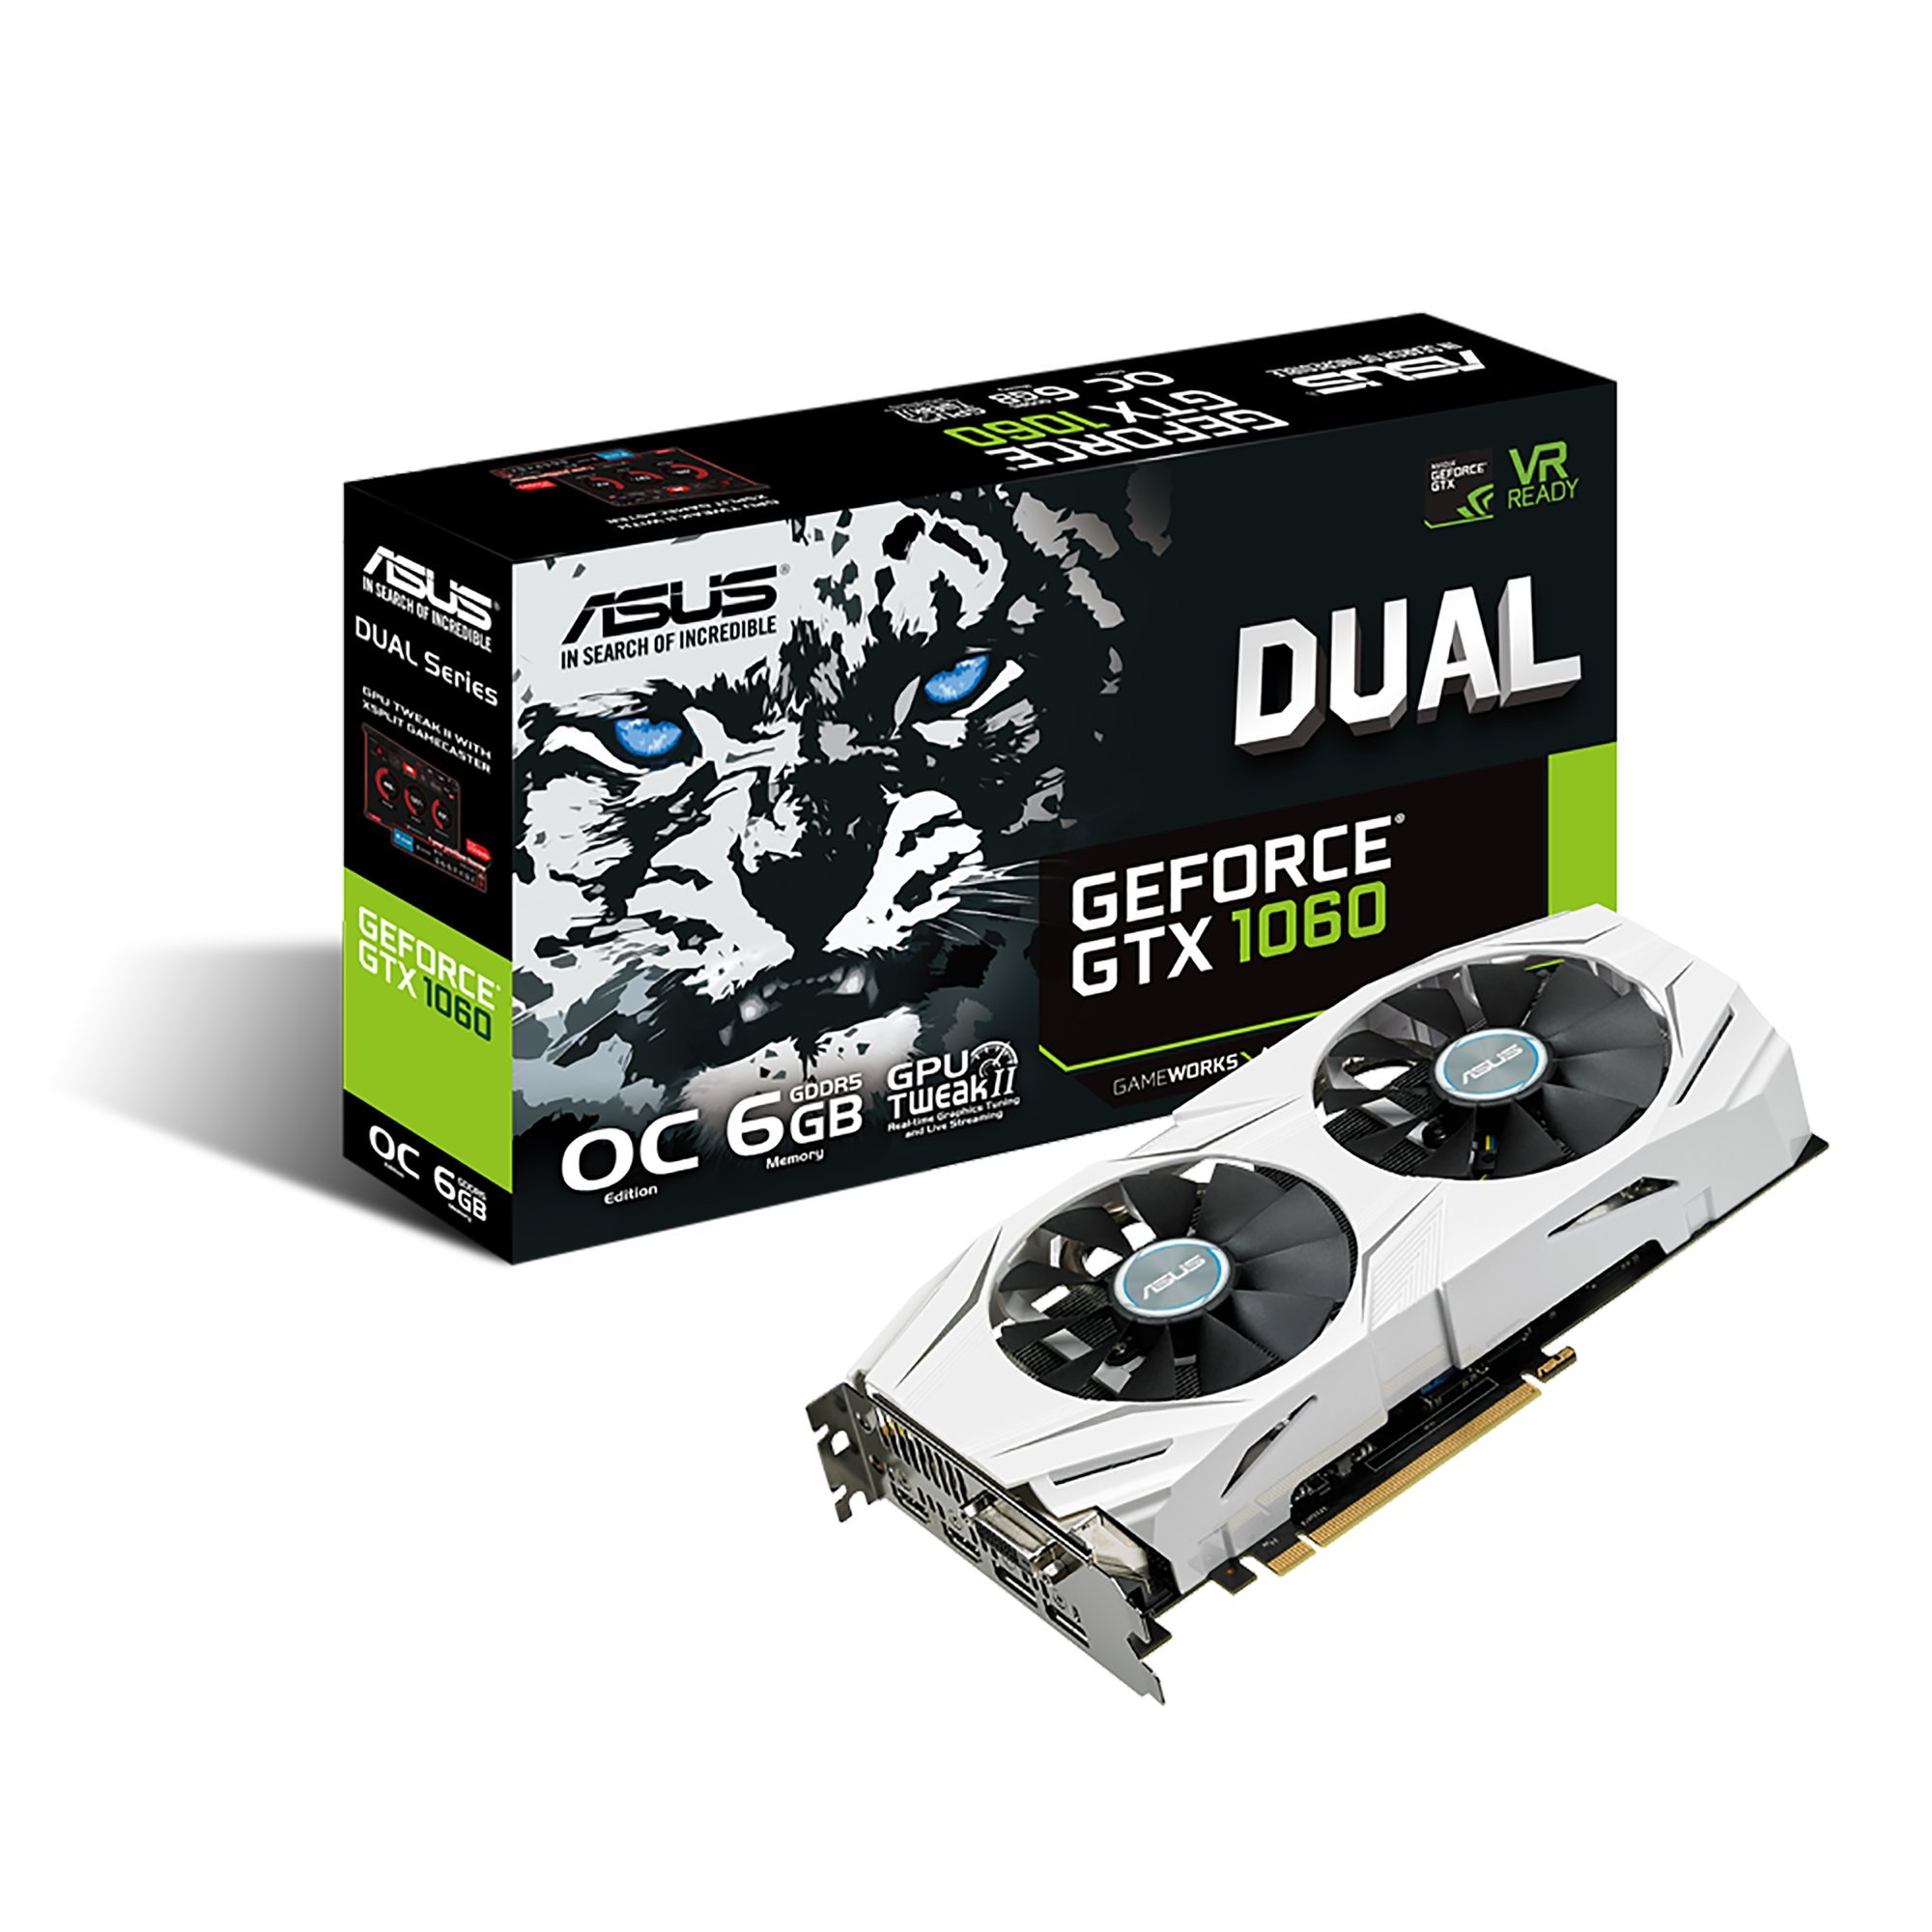 ASUS GeForce GTX 1060 6GB Dual-fan OC Edition VR Ready Dual HDMI DP 1.4 Gaming Graphics Card (DUAL-GTX1060-O6G) by Asus (Image #9)